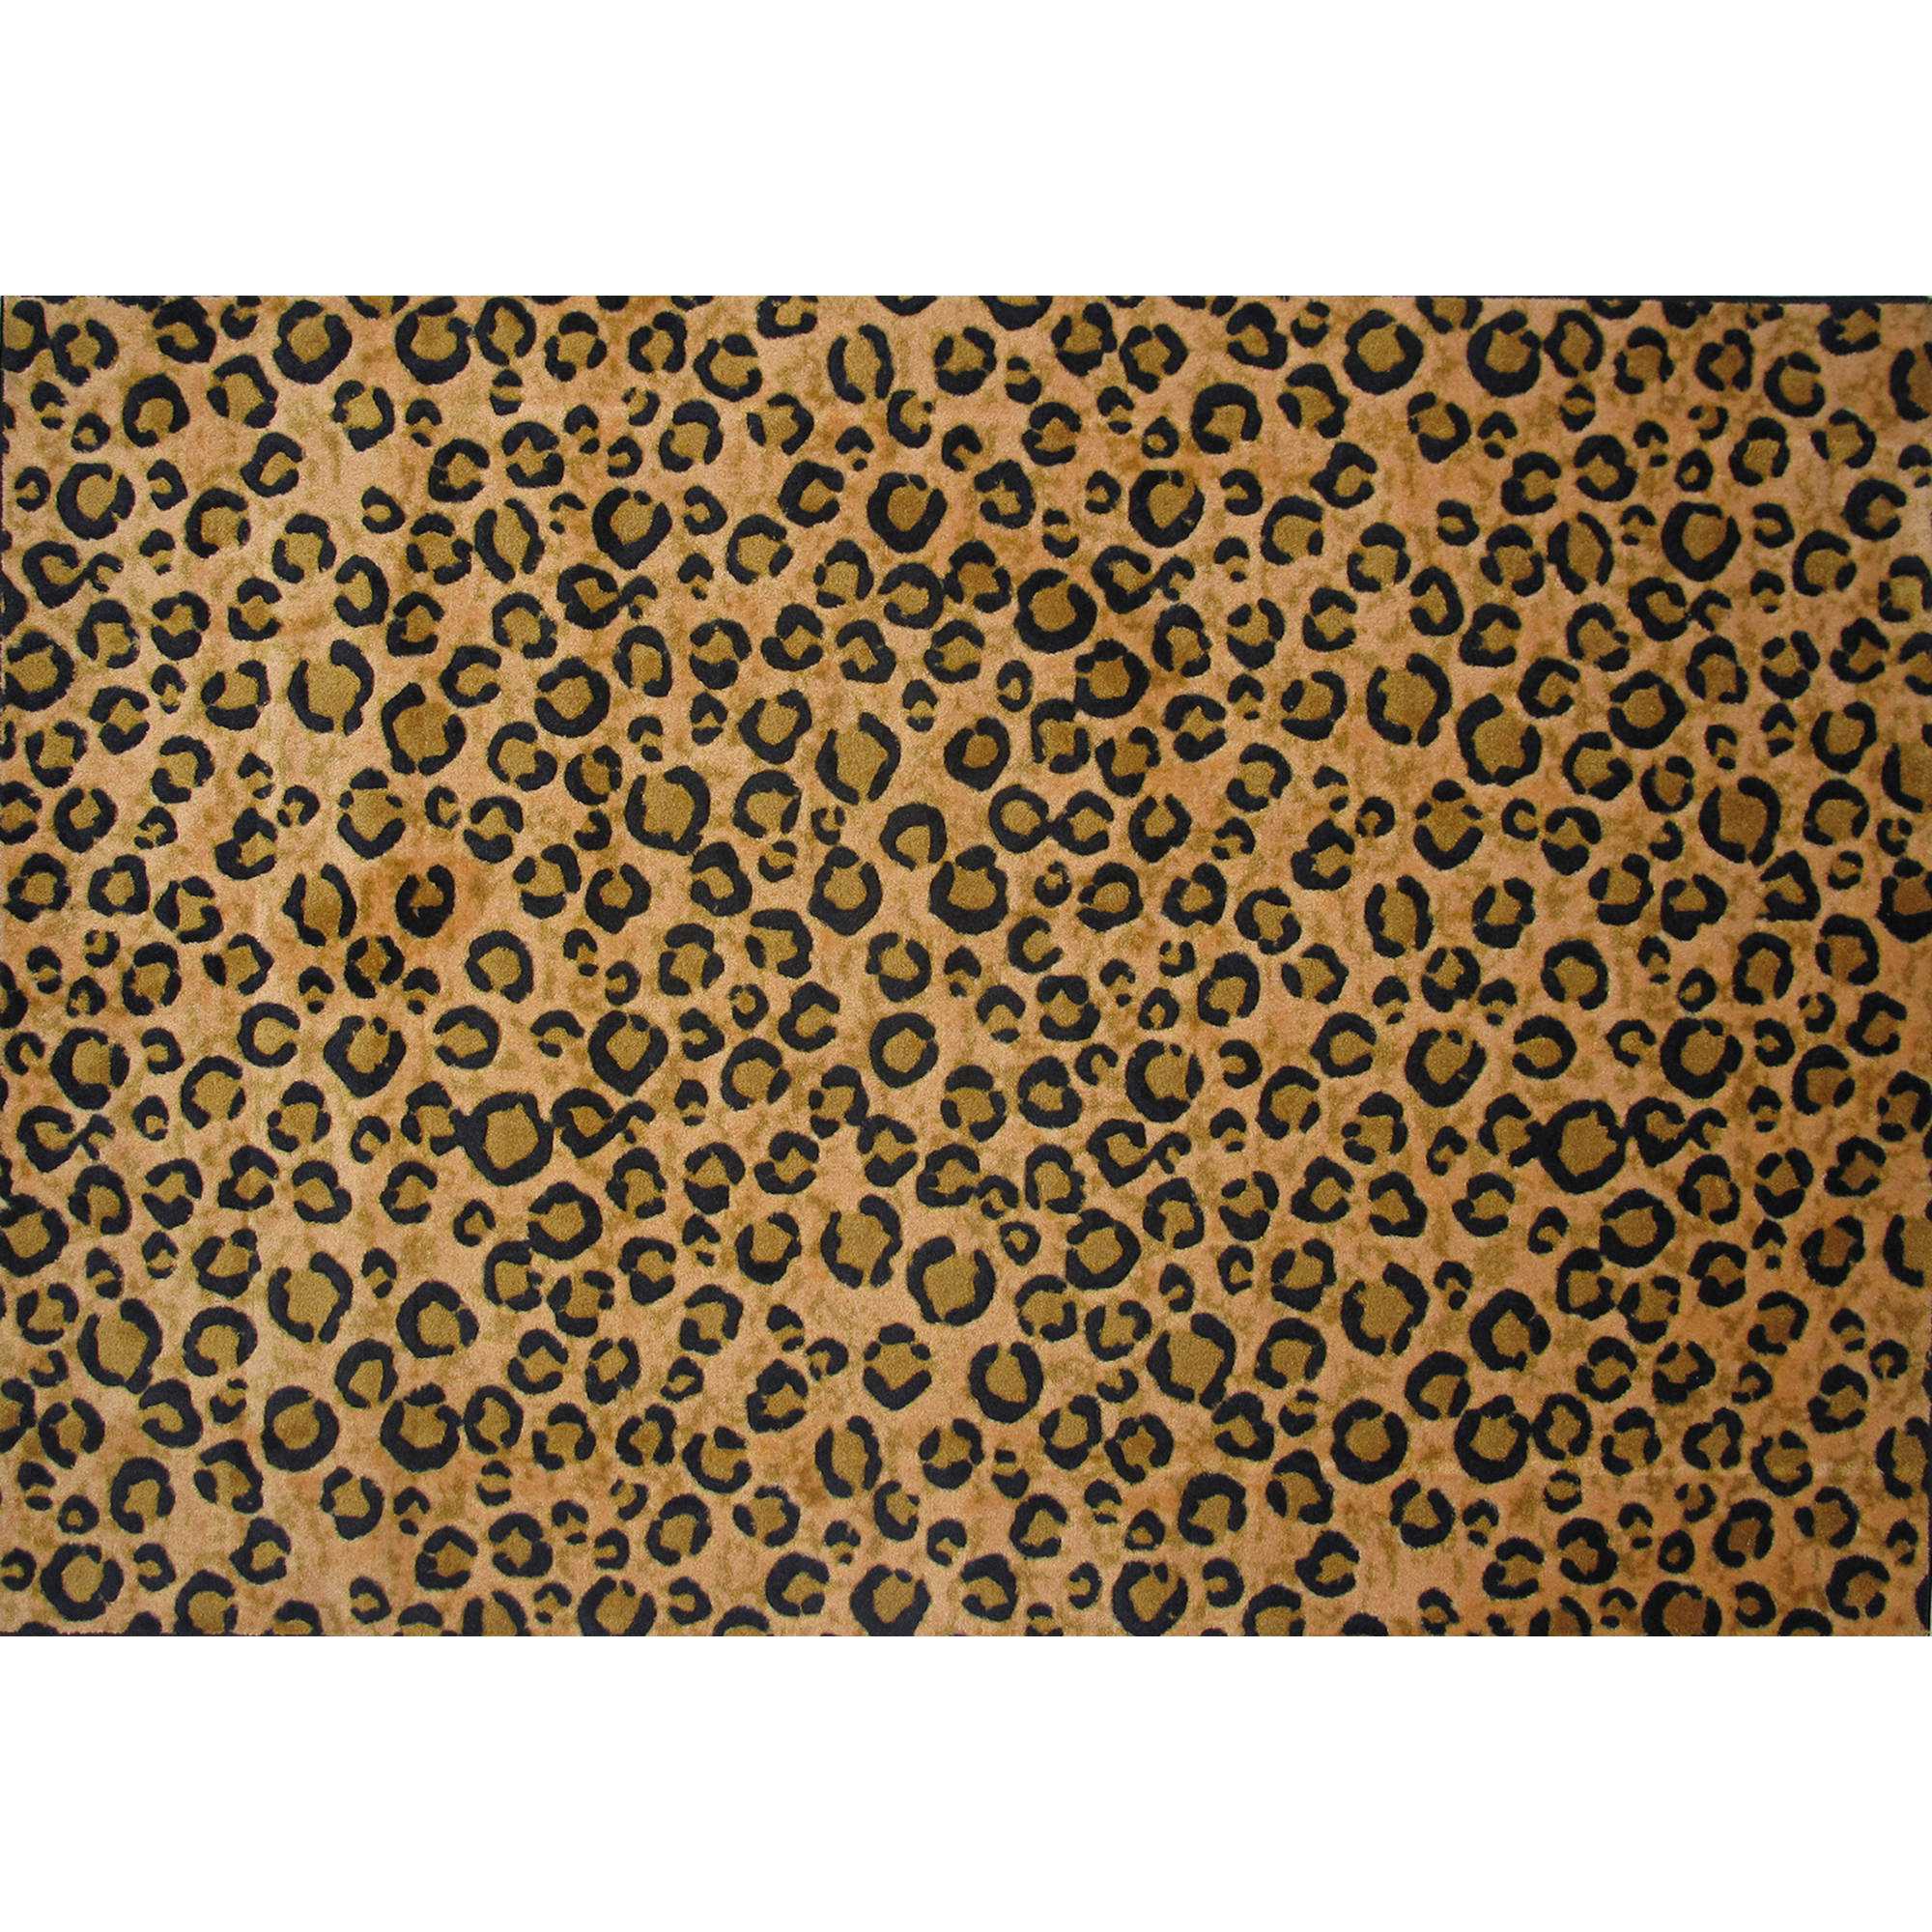 Fun Rugs Leopard Skin Kids Rugs